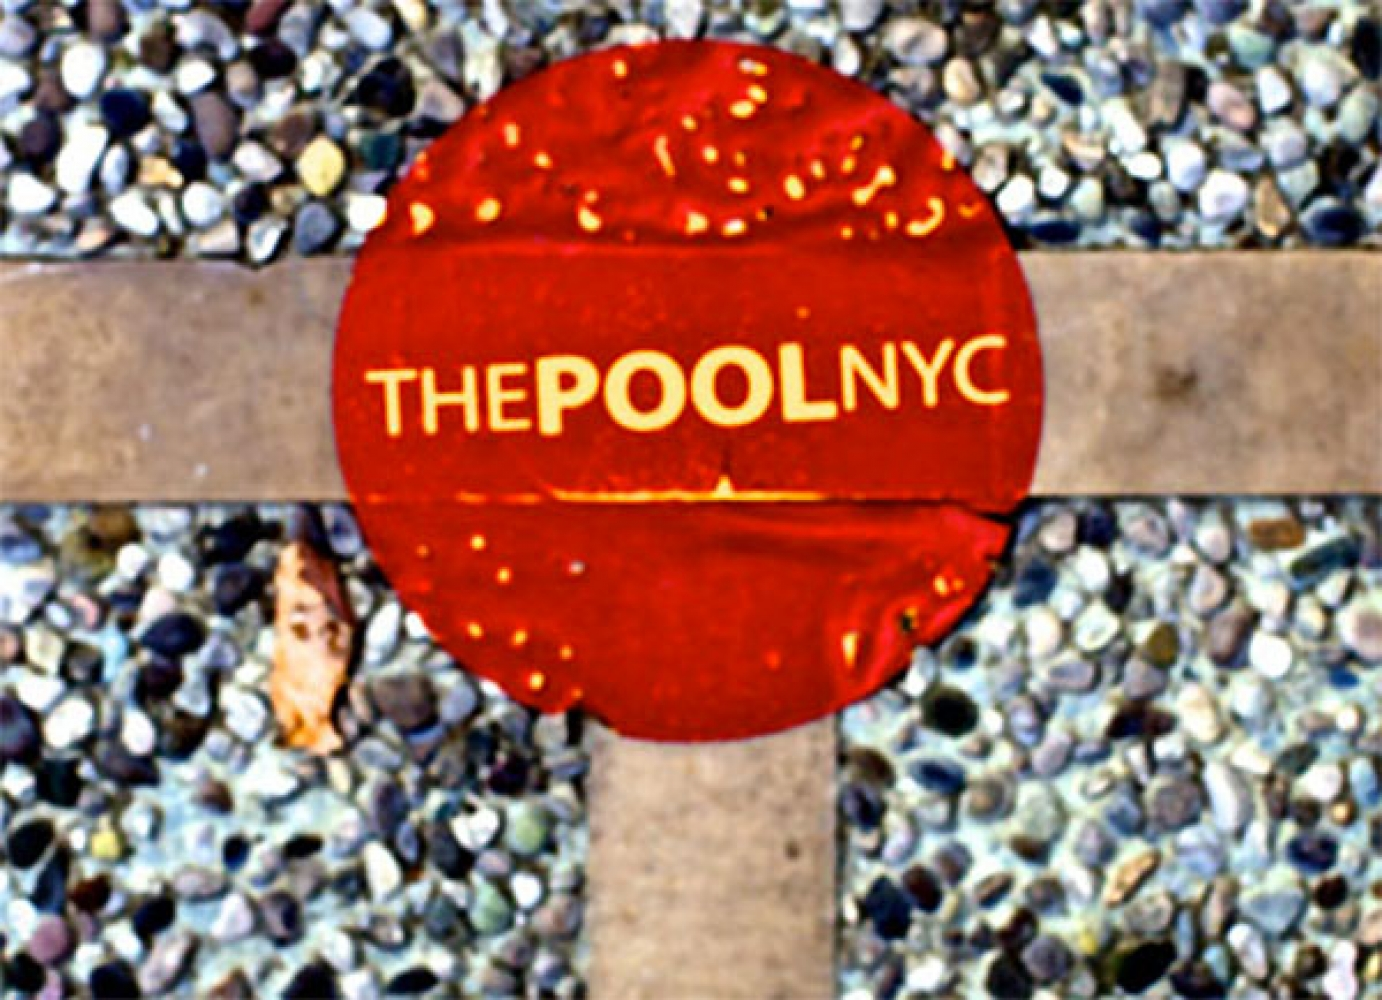 The Pool NYC